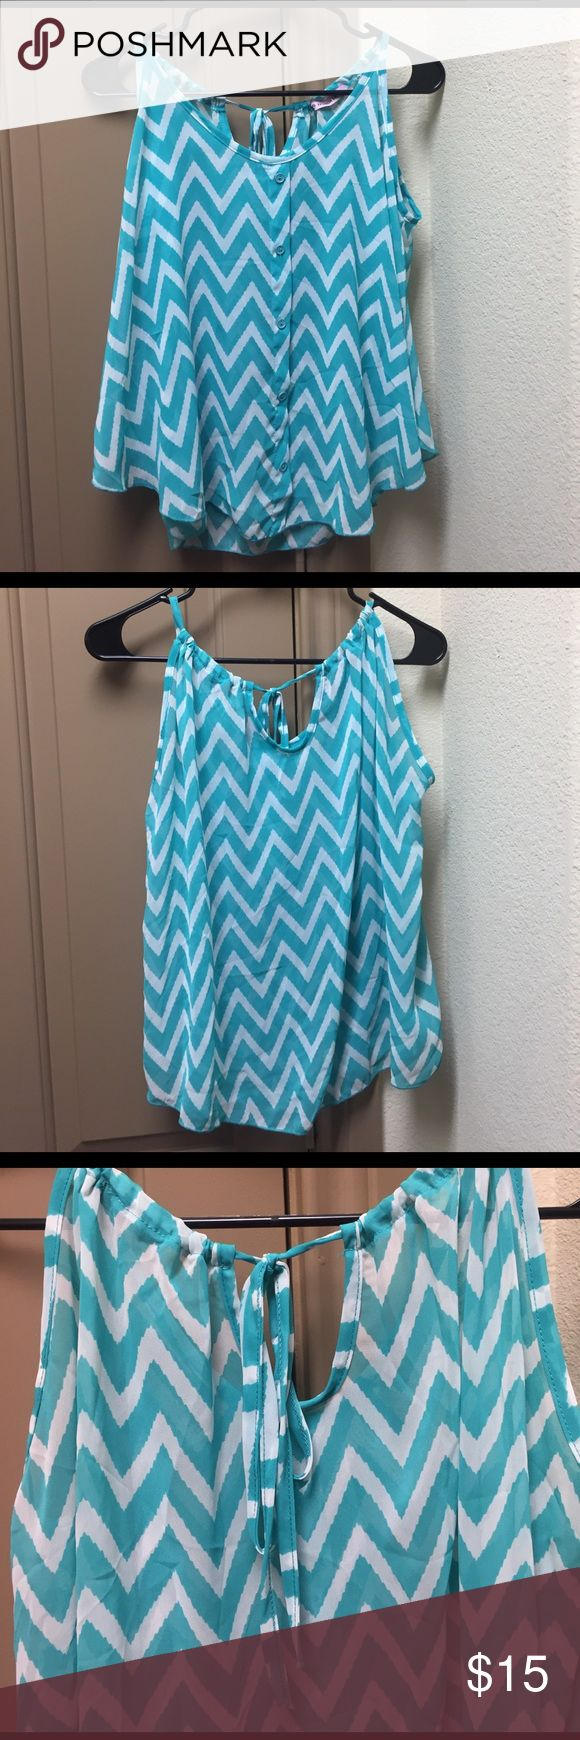 Turquoise chevron print tank shirt Super cute, comfy, flowy and perfect for summer. Tops Tank Tops